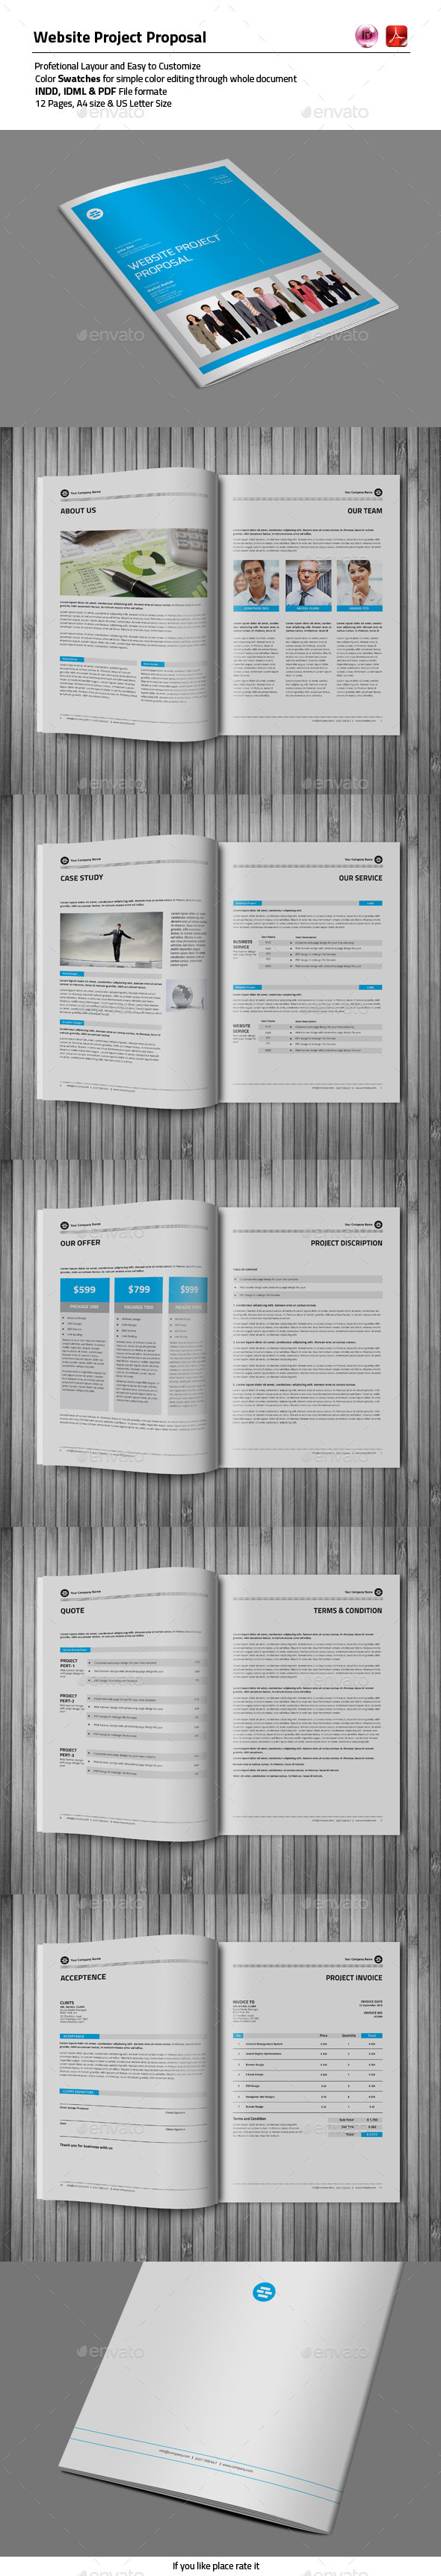 12 Pages Proposal Template